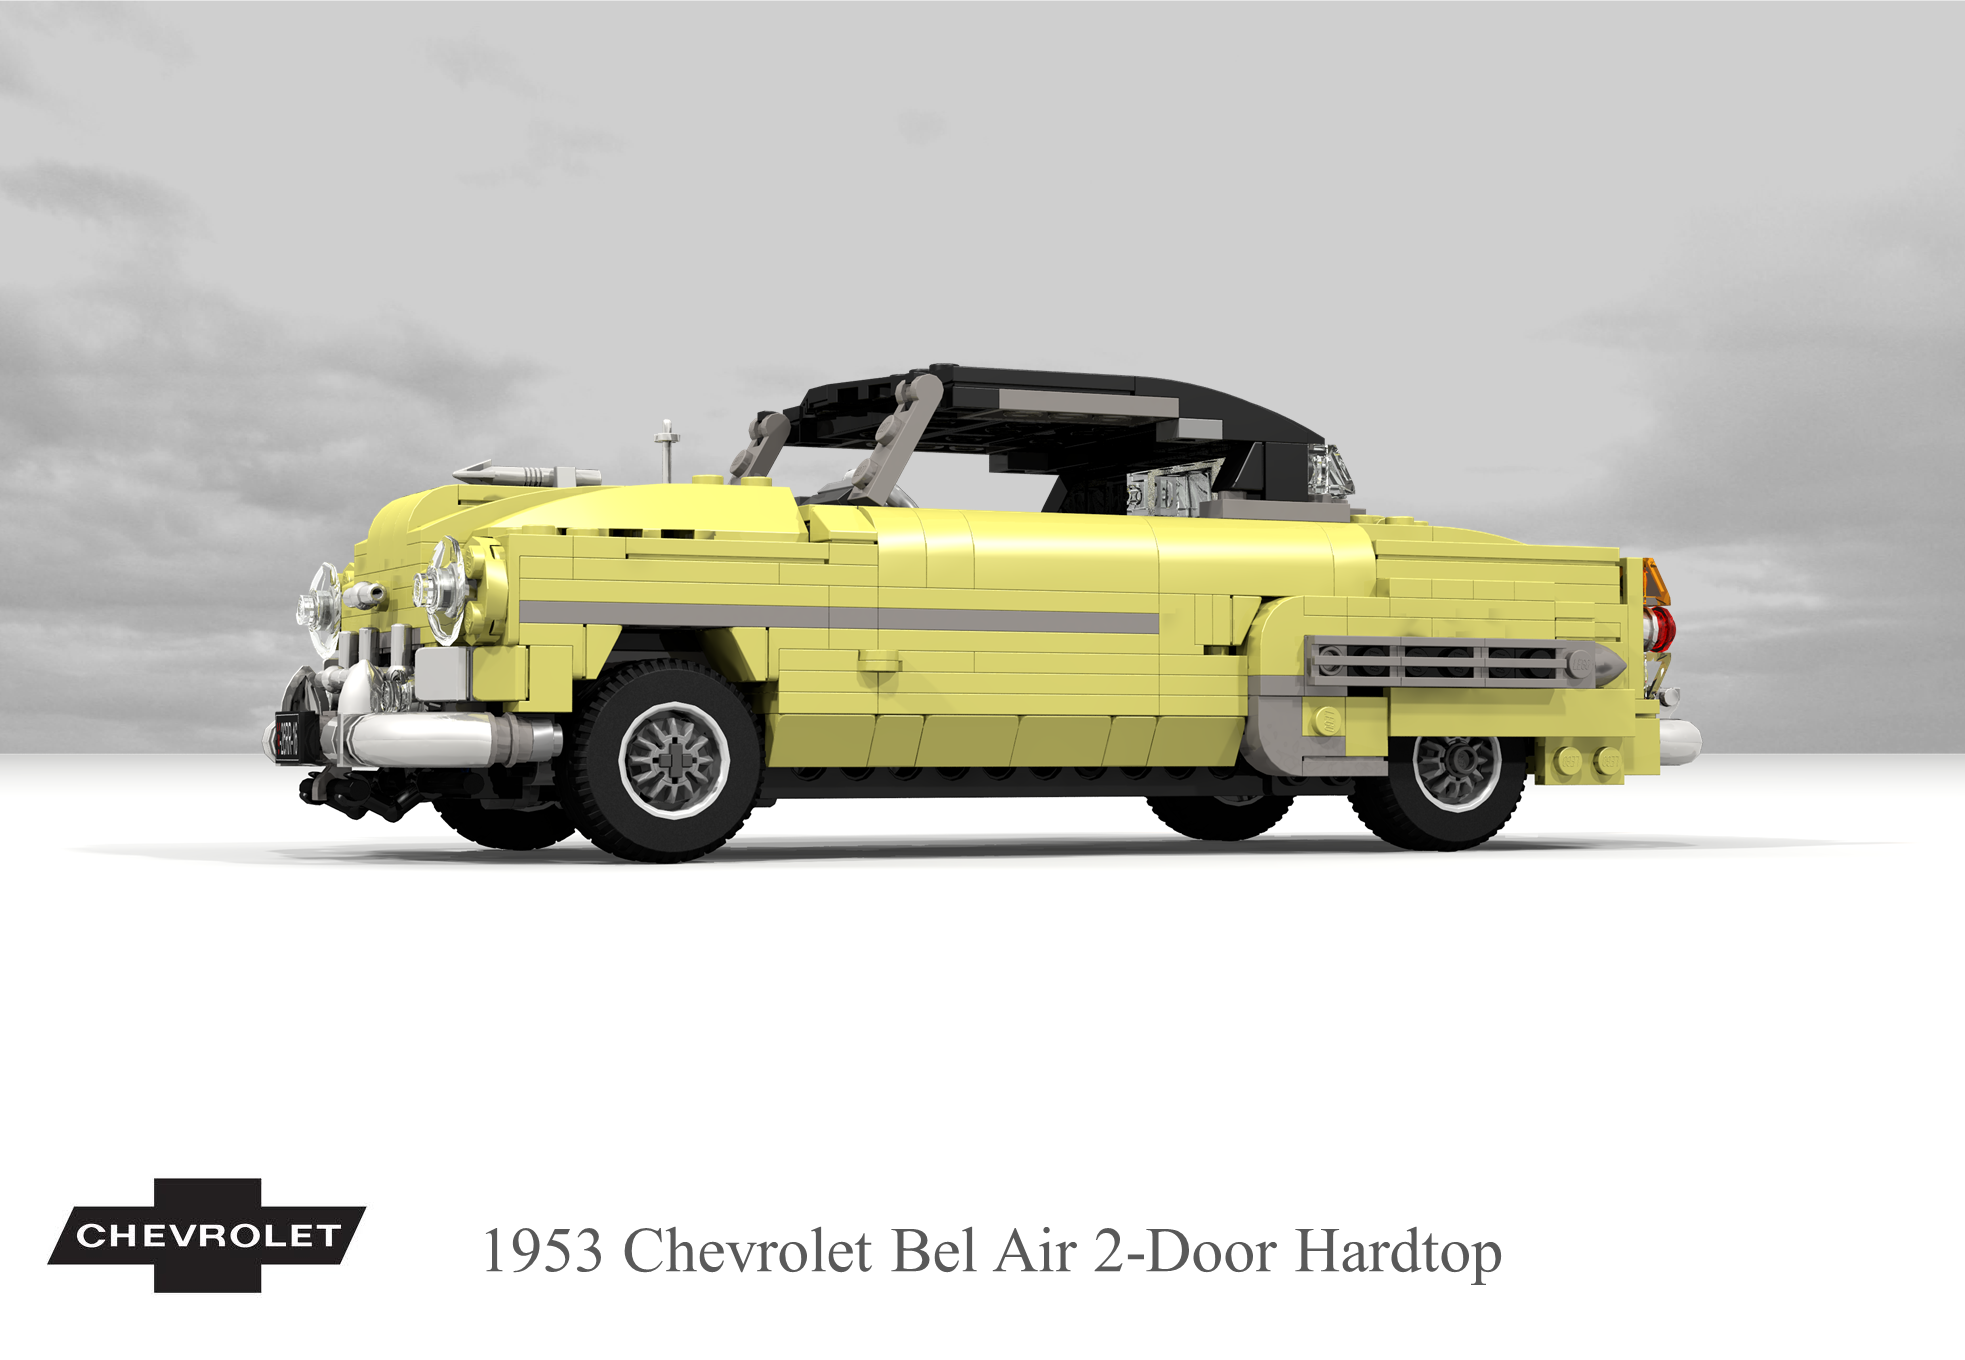 chevrolet_1953_bel_air_hardtop_coupe_06.png